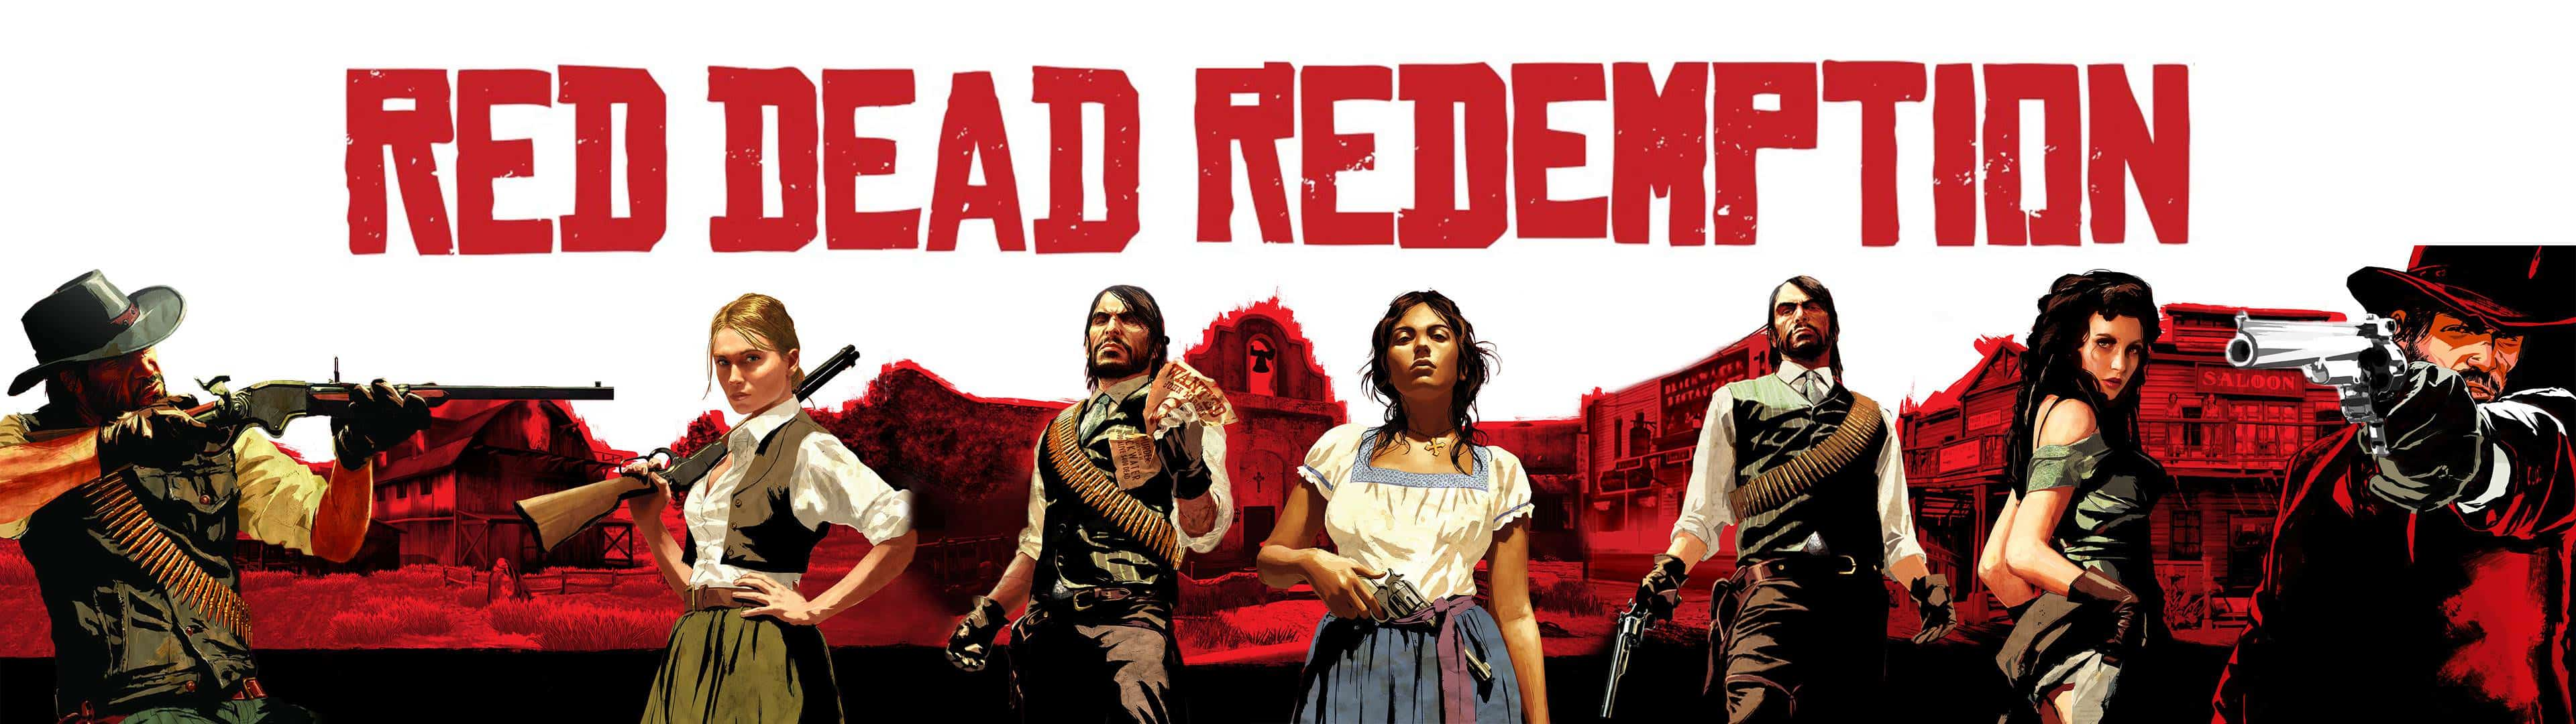 red dead redemption cover dual monitor wallpaper